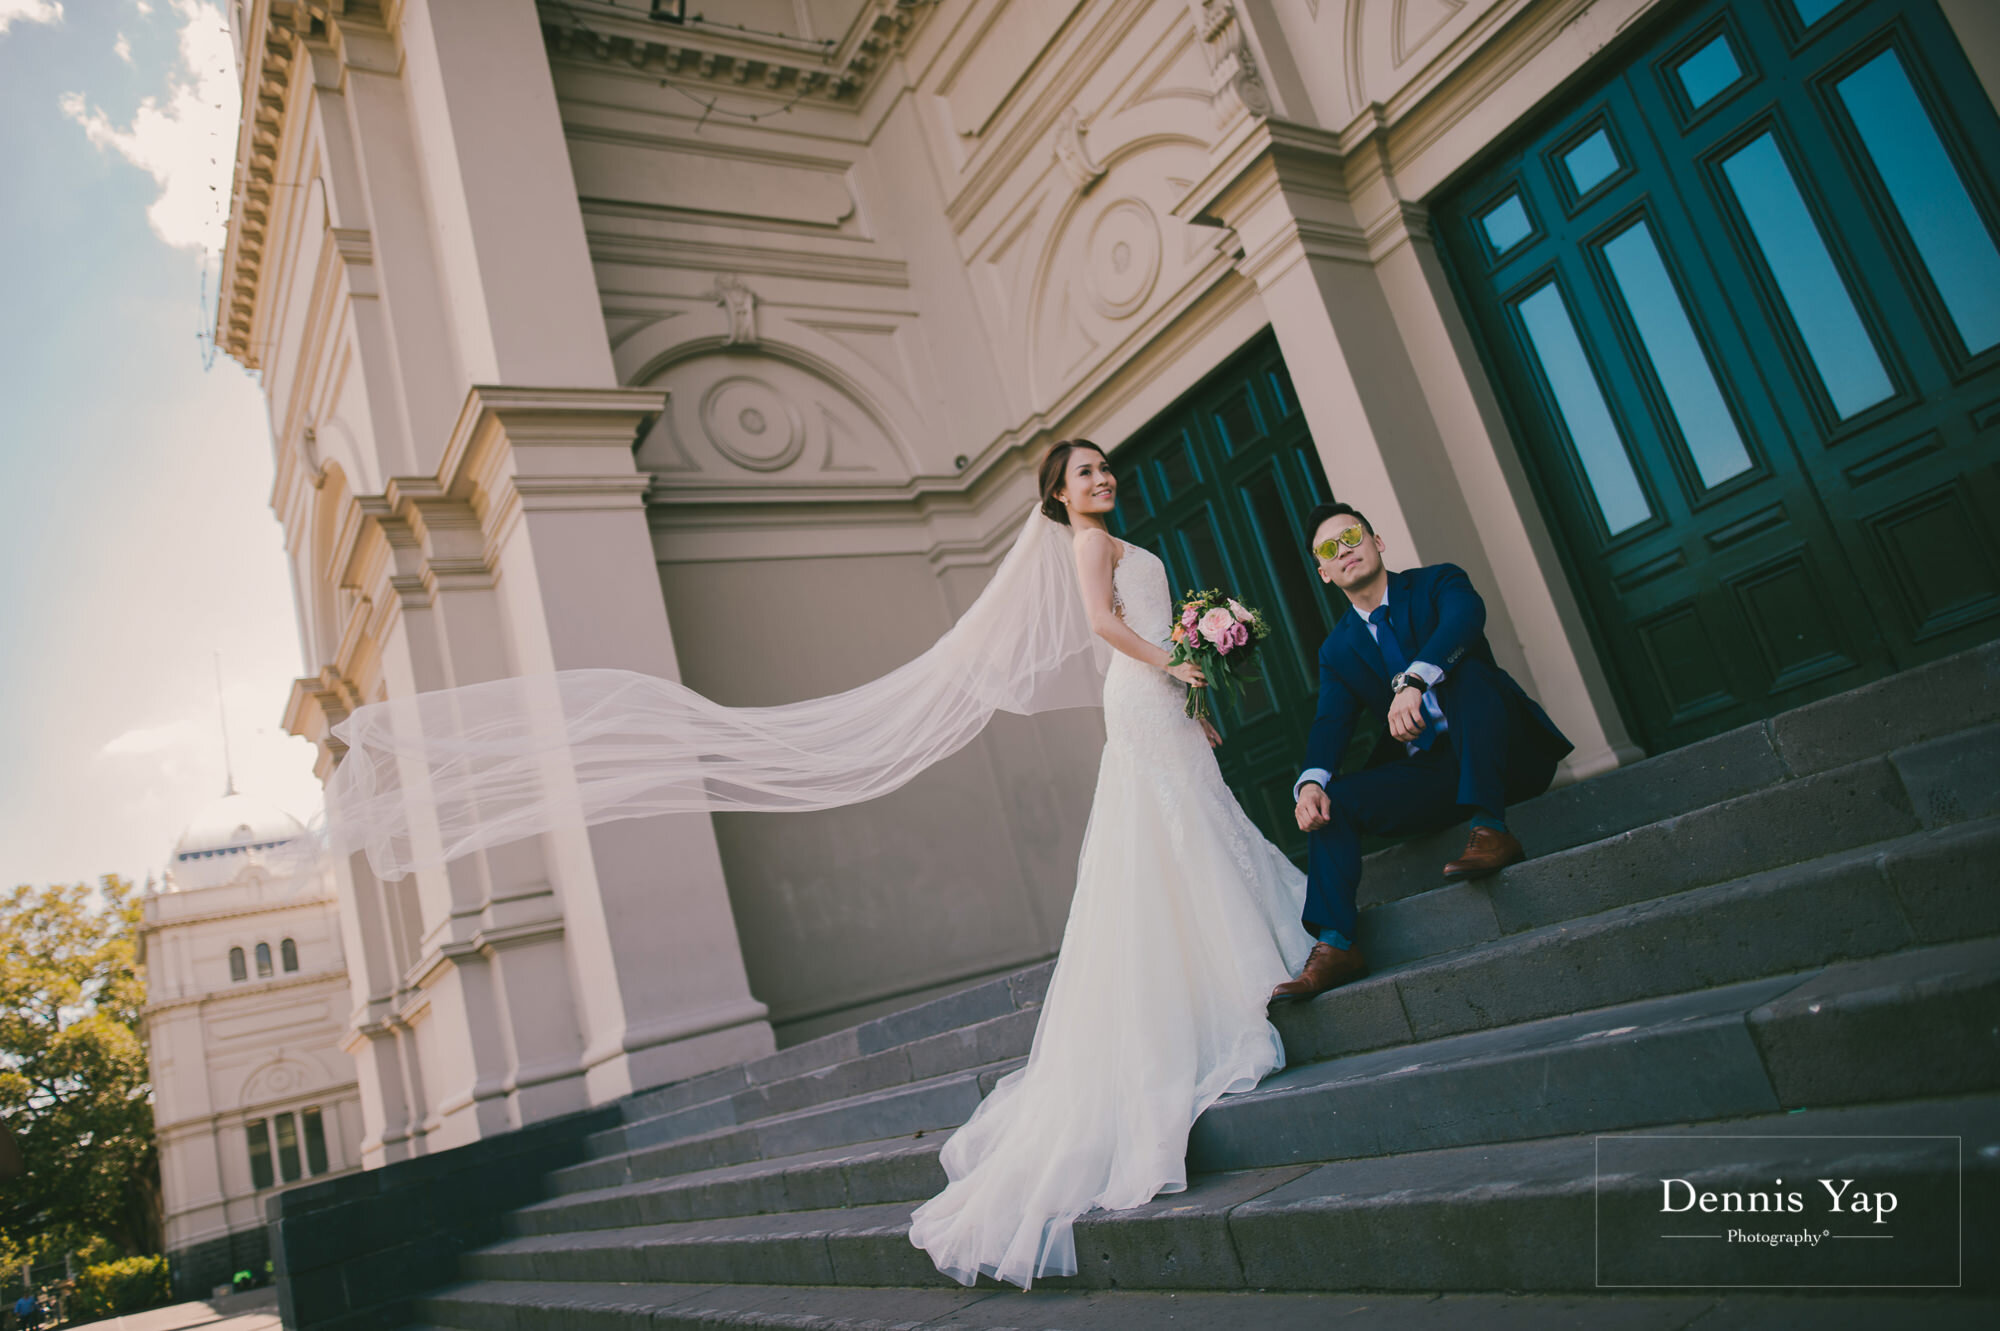 kevin junie melbourne pre wedding lifestyle natural dennis yap photography malaysia top wedding photographer-8.jpg